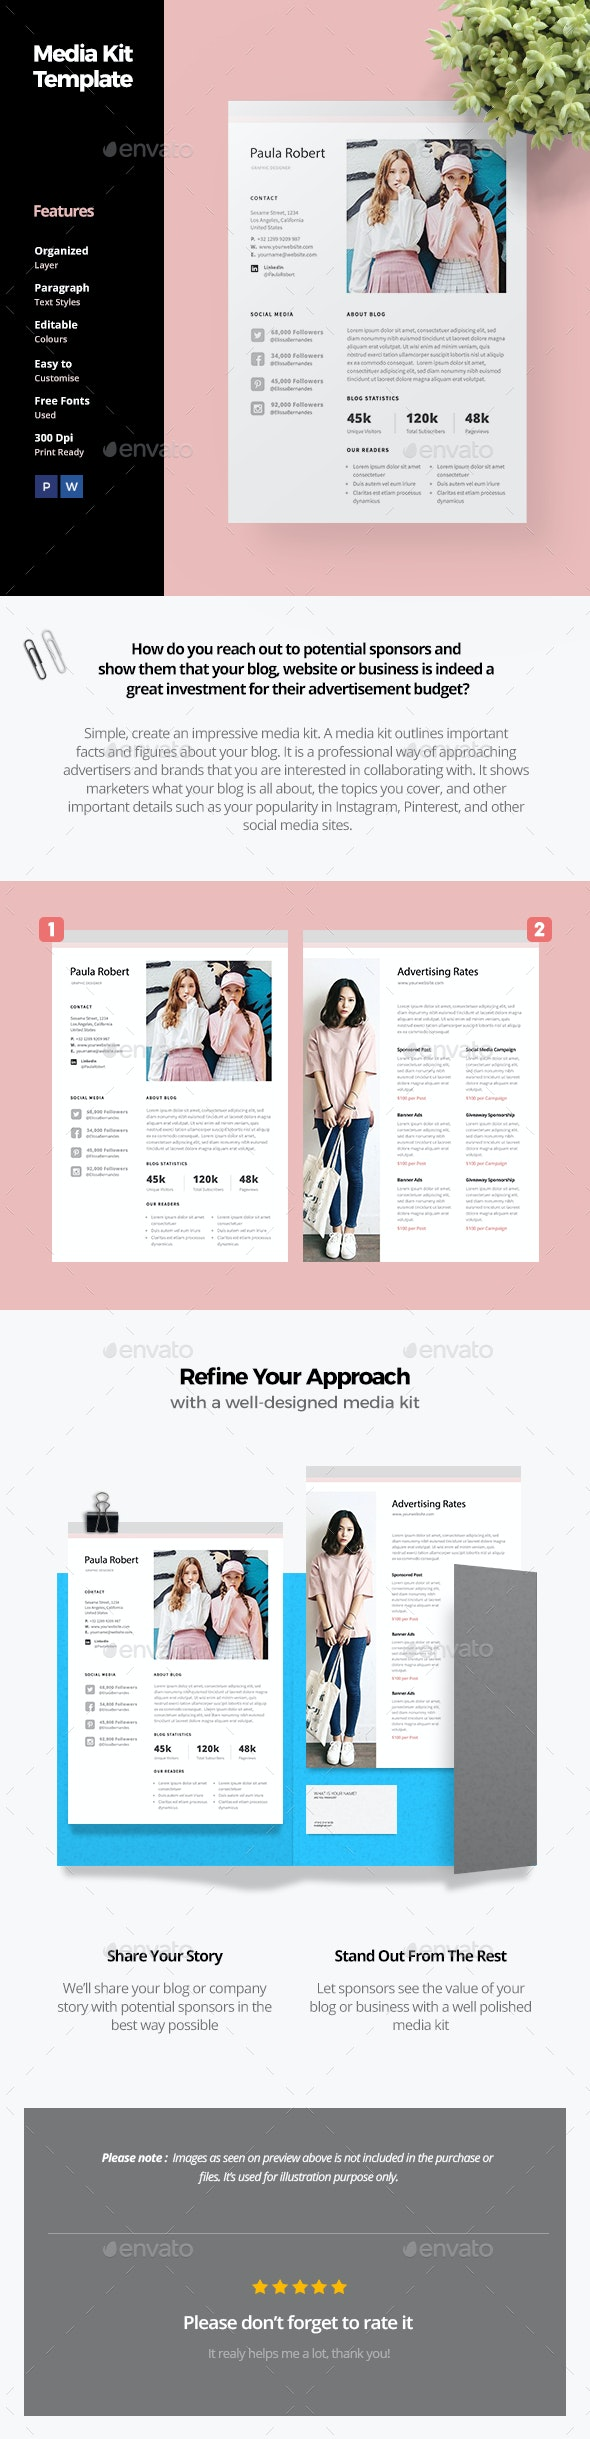 Blog Media Kit Template - Proposals & Invoices Stationery